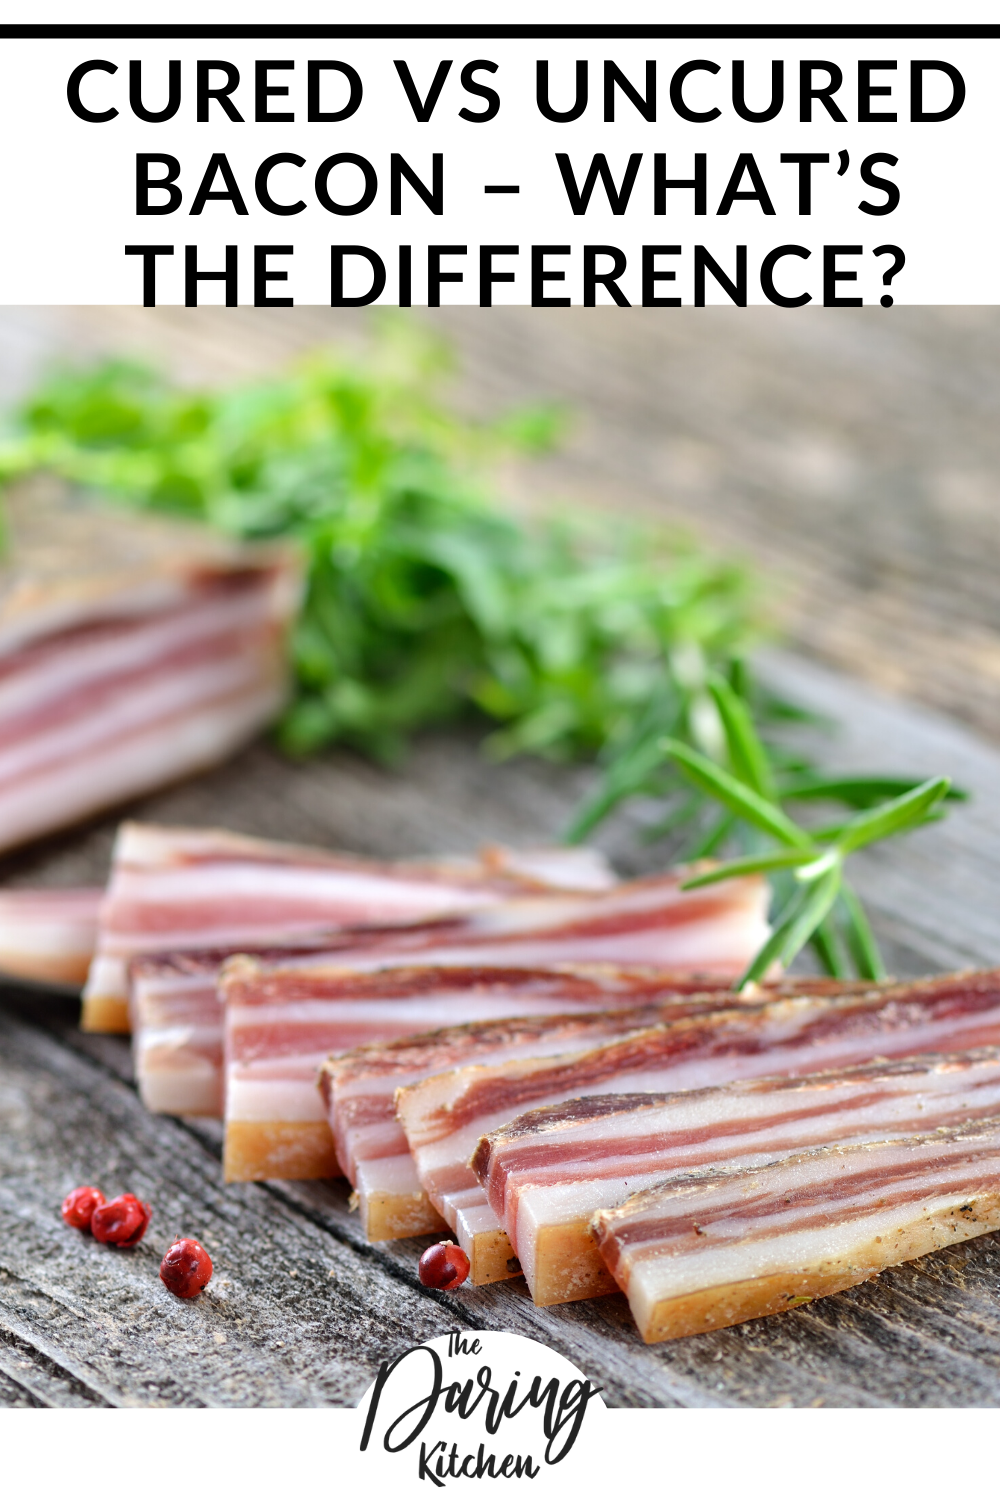 What Is The Difference Between Cured And Uncured Meat : difference, between, cured, uncured, Cured, Uncured, Bacon, What's, Difference?, Daring, Kitchen, Bacon,, Vegan, Summer, Recipes,, Family, Meals